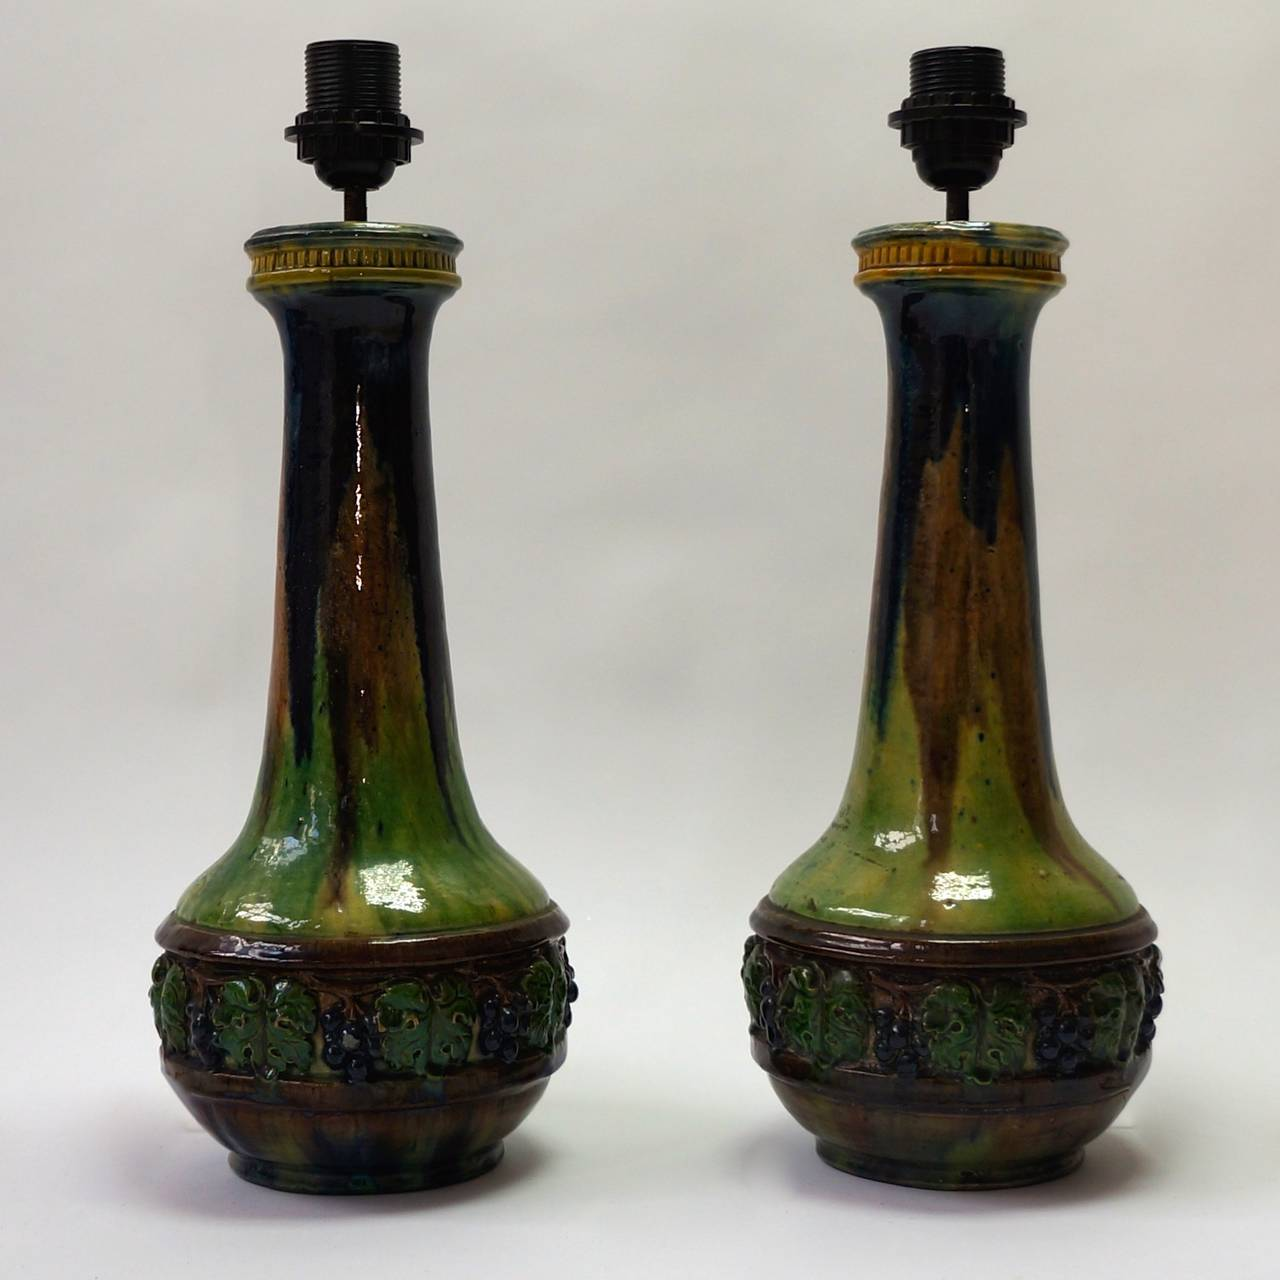 A pair of ceramic table lamps.